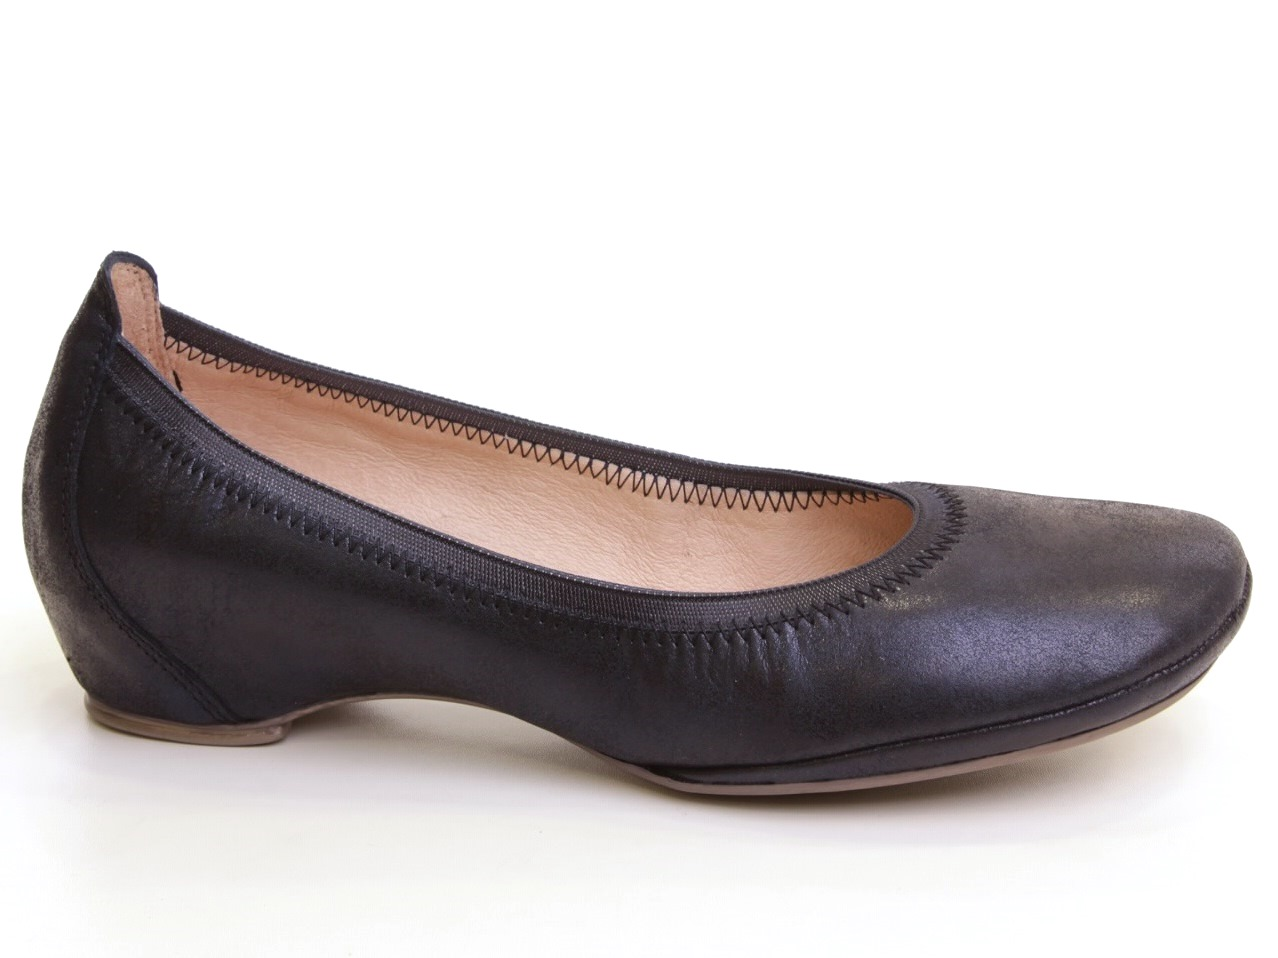 Flat Shoes, Ballerinas, Mocassins Hispanitas - 165 HV62658